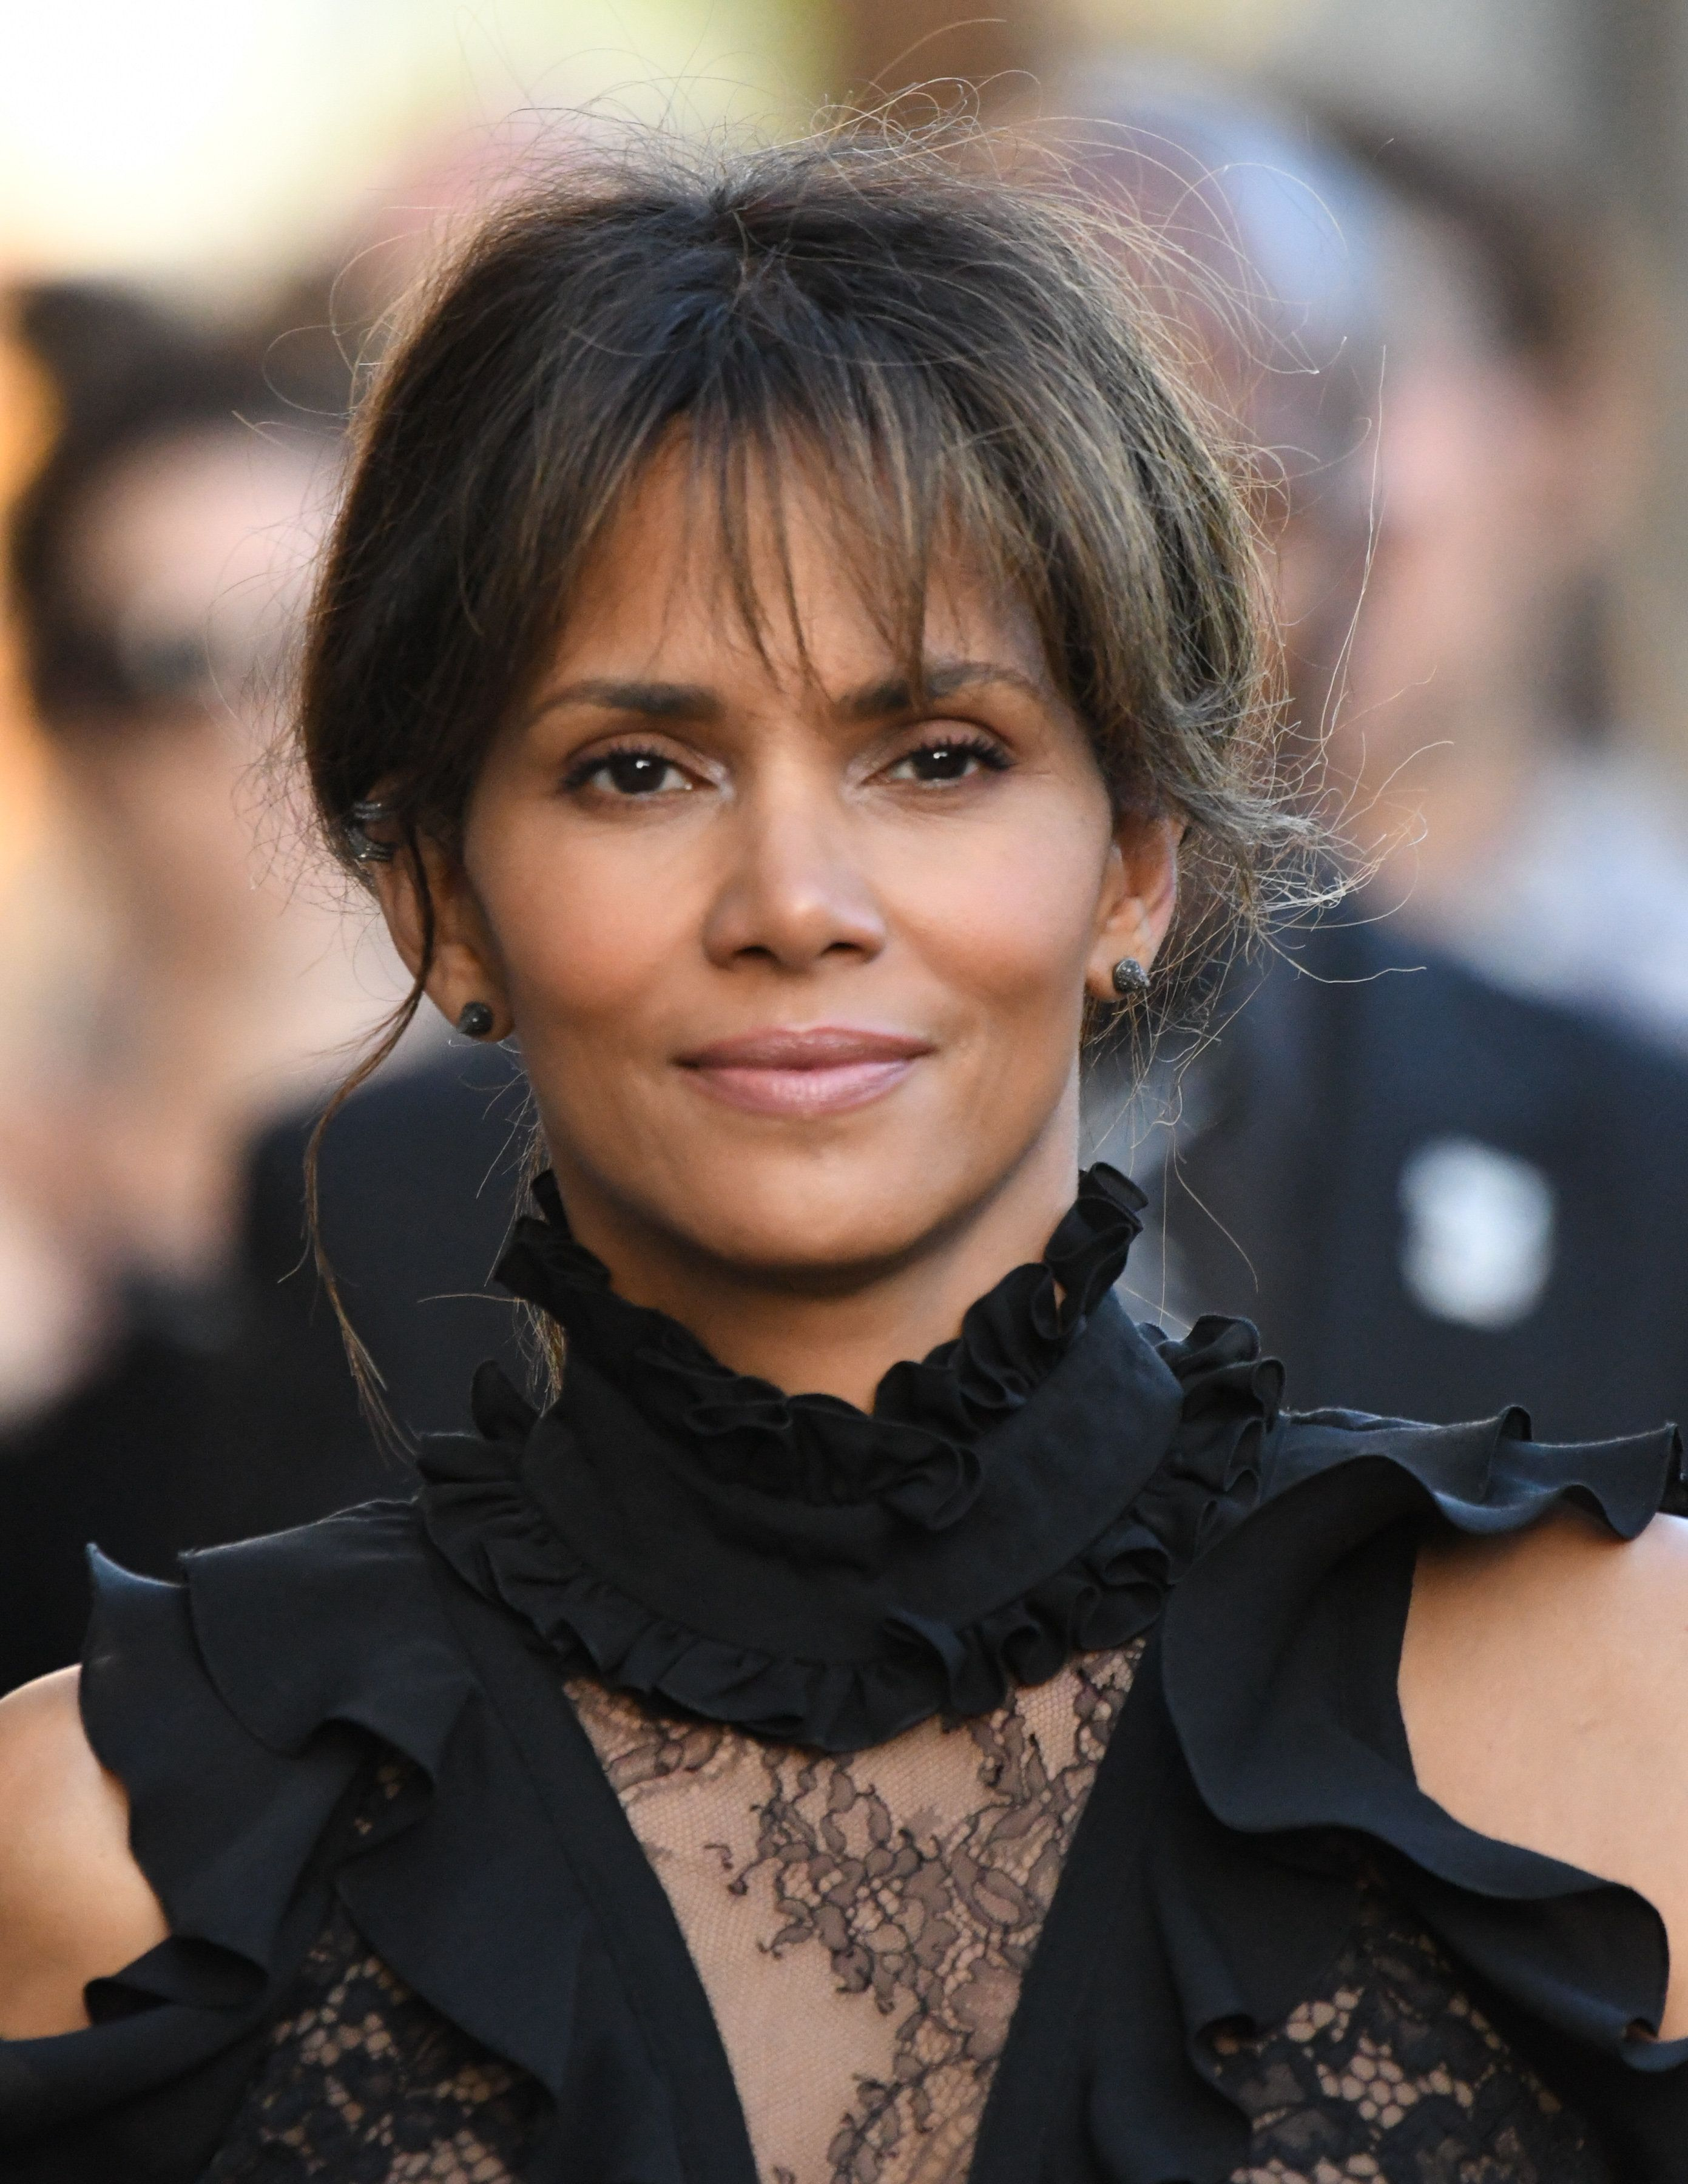 LOS ANGELES, CA - SEPTEMBER 21: Halle Berry is seen. on September 21, 2017 in Los Angeles, California.  (Photo by PG/Bauer-Griffin/GC Images)